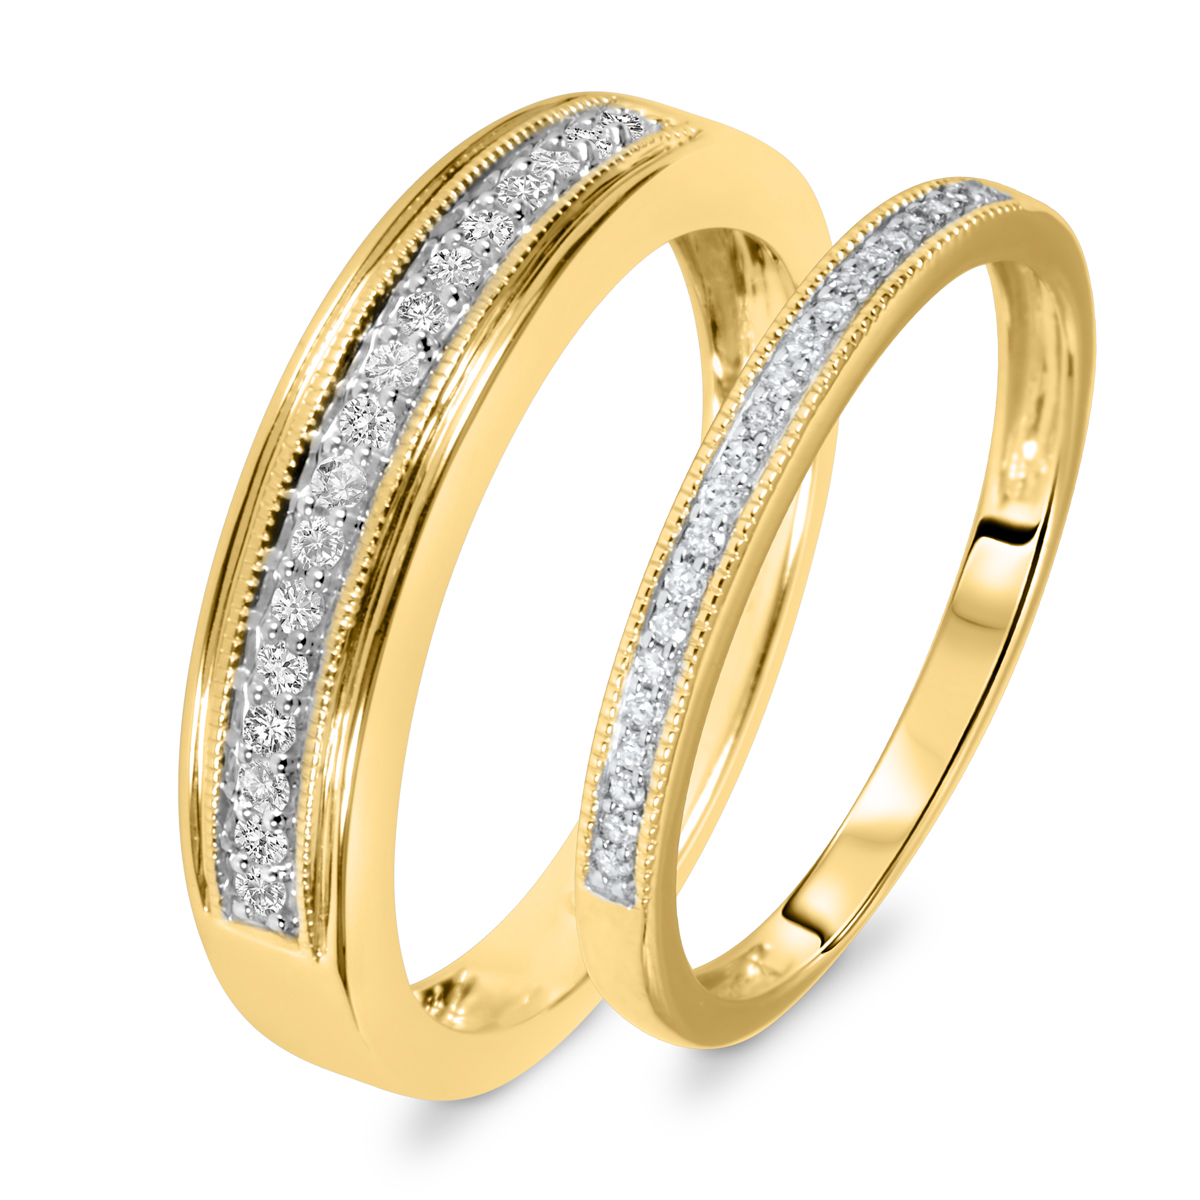 1/4 Carat T.W. Round Cut Diamond His And Hers Wedding Band Set 10K Yellow Gold-